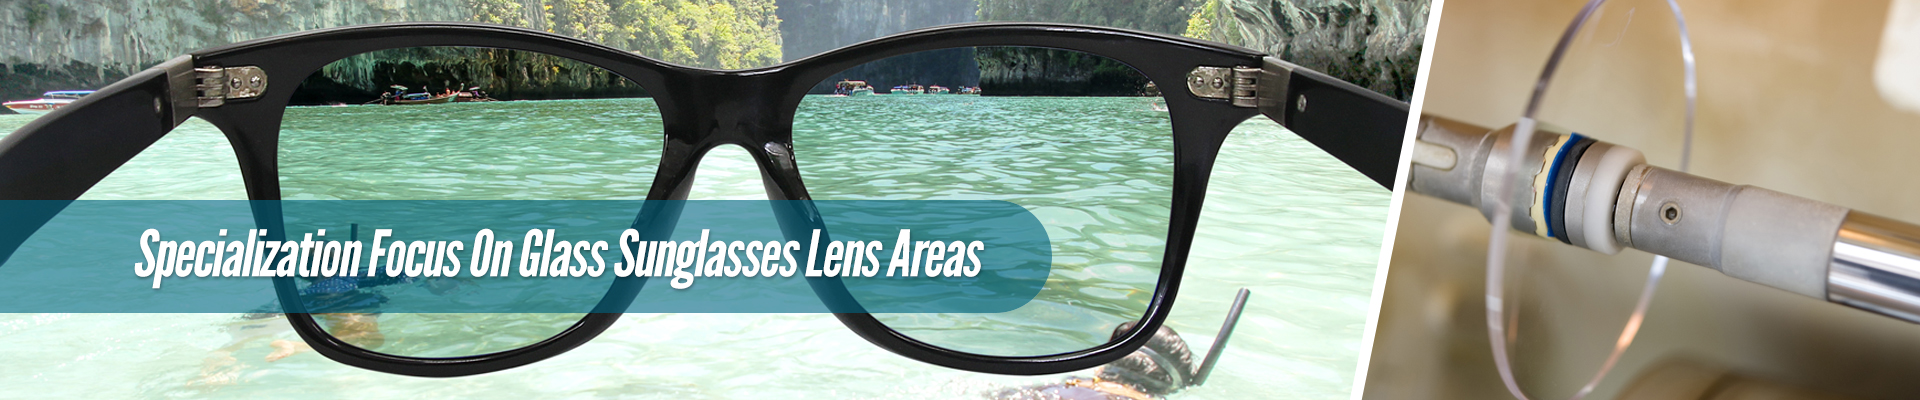 specialization focus on glass Sunglasses lens areas